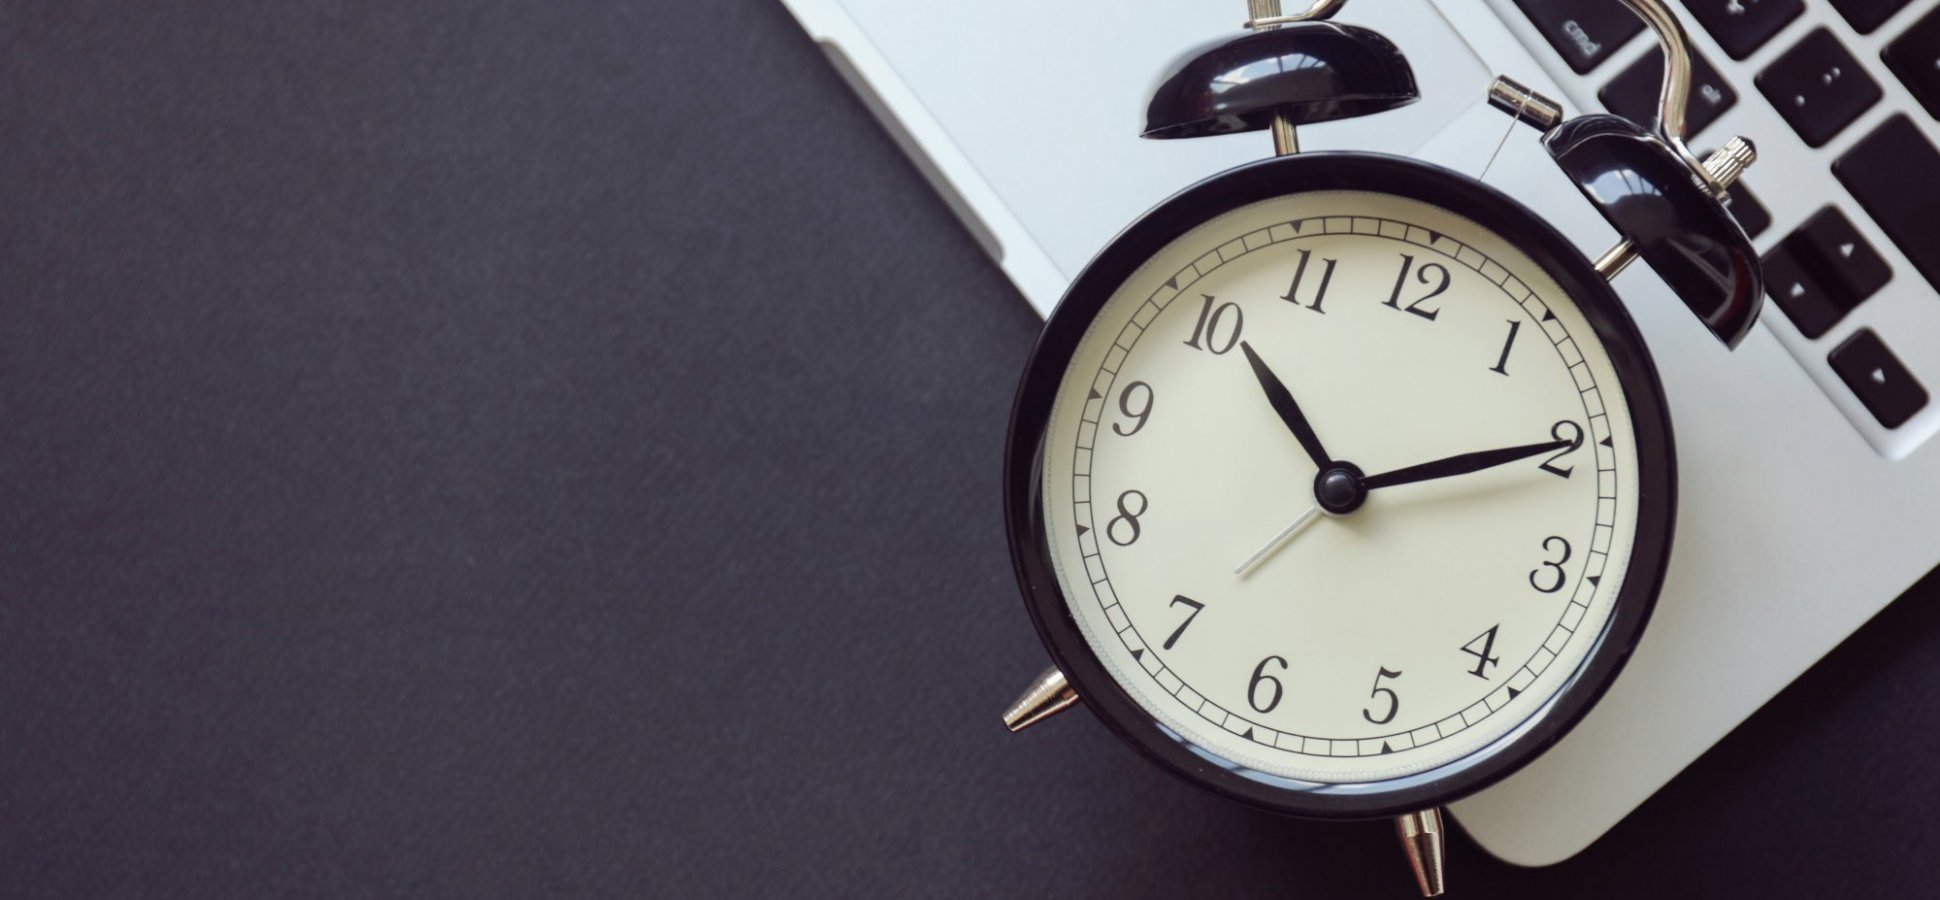 Want More Value Out of Your Day? Focus on Creating Time Blocks